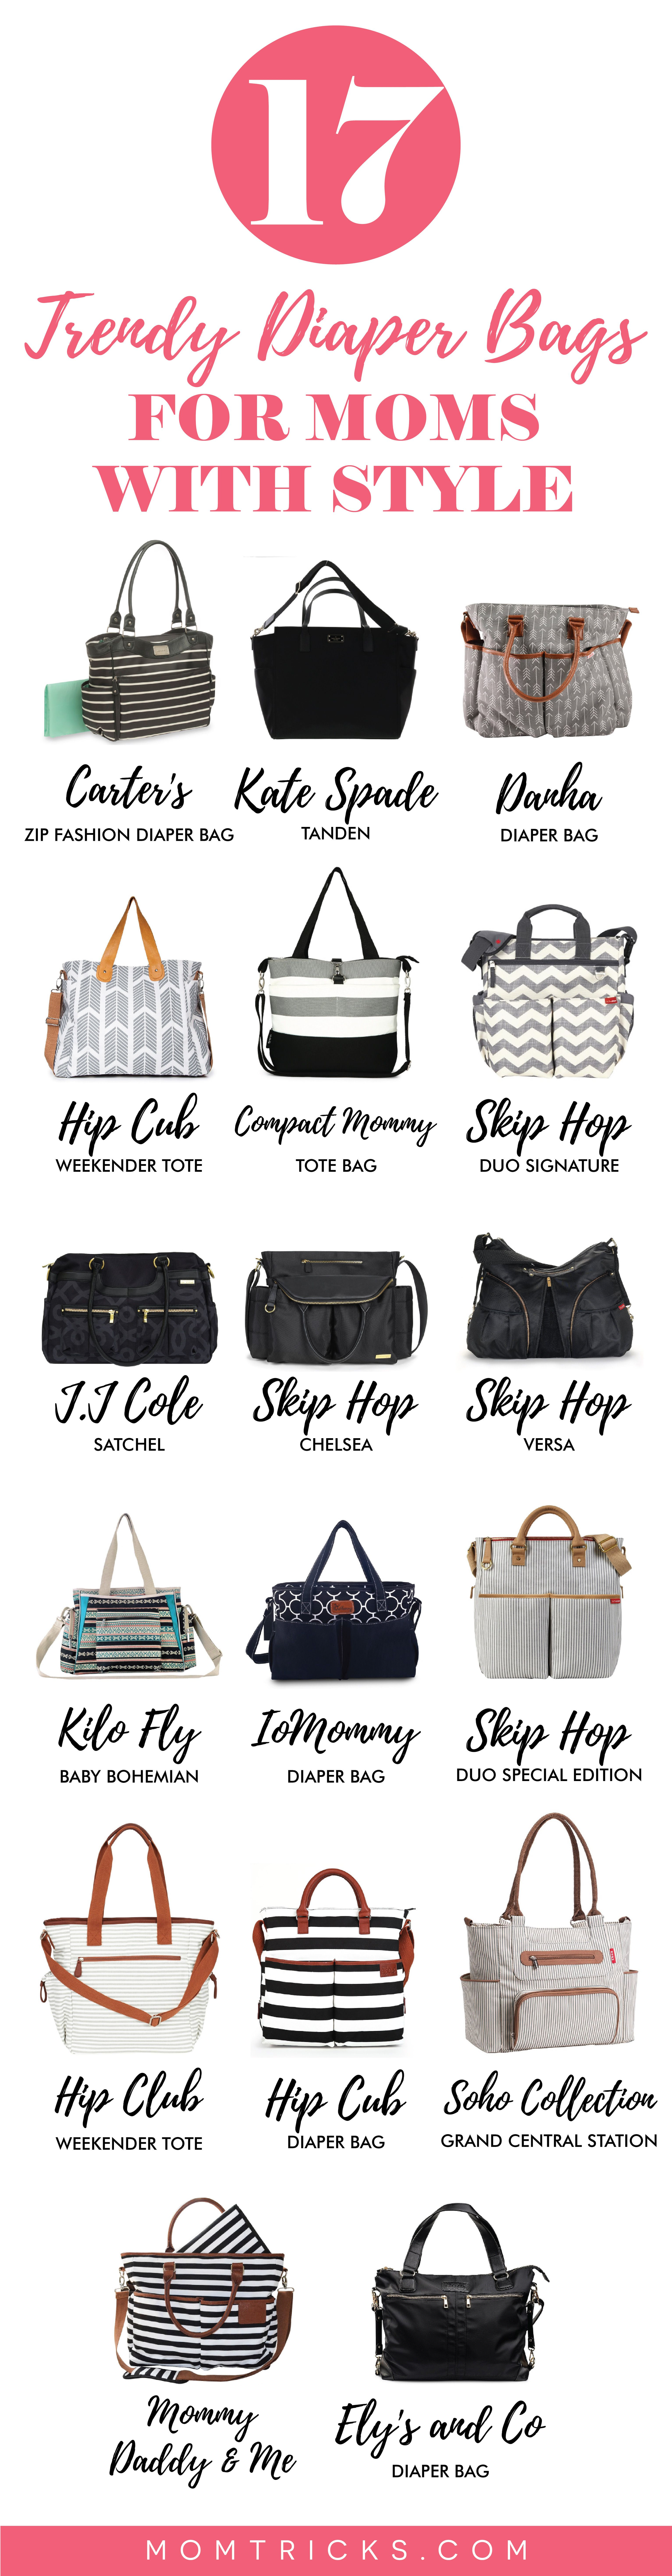 416f1cb5fa3a8 17 Of The Best Trendy & Practical Diaper Bags For Moms With Style ...